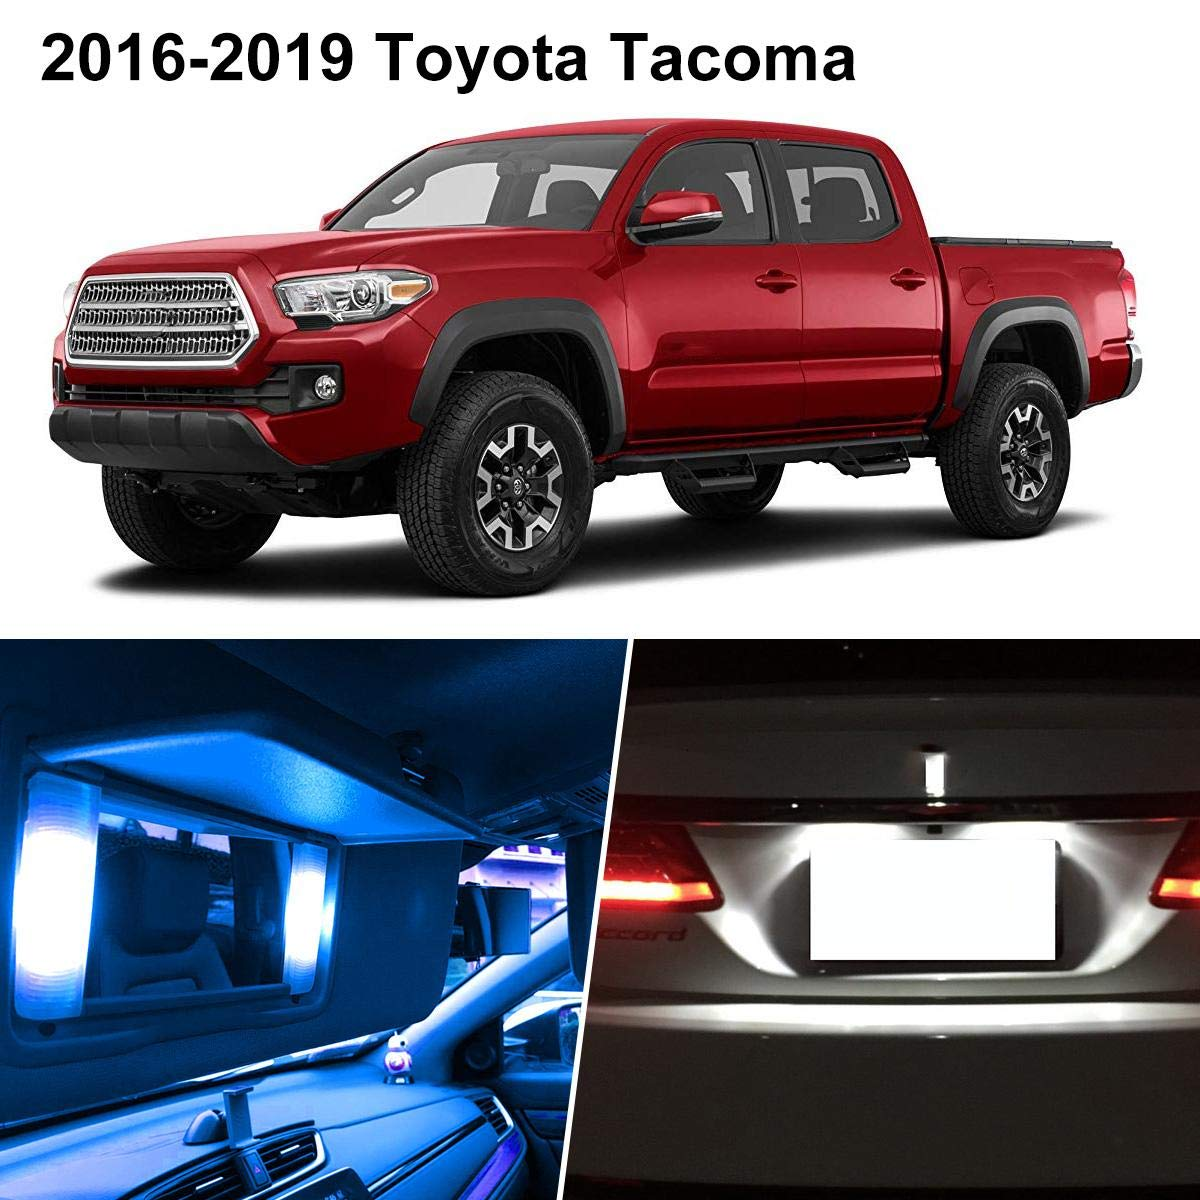 Partsam Interior LED Lights Light Package Lighting Kit with Tool Pry Bar Replacement for Toyota Tacoma 2016 2017 2018 2019 -Ice Blue (10 Pieces)